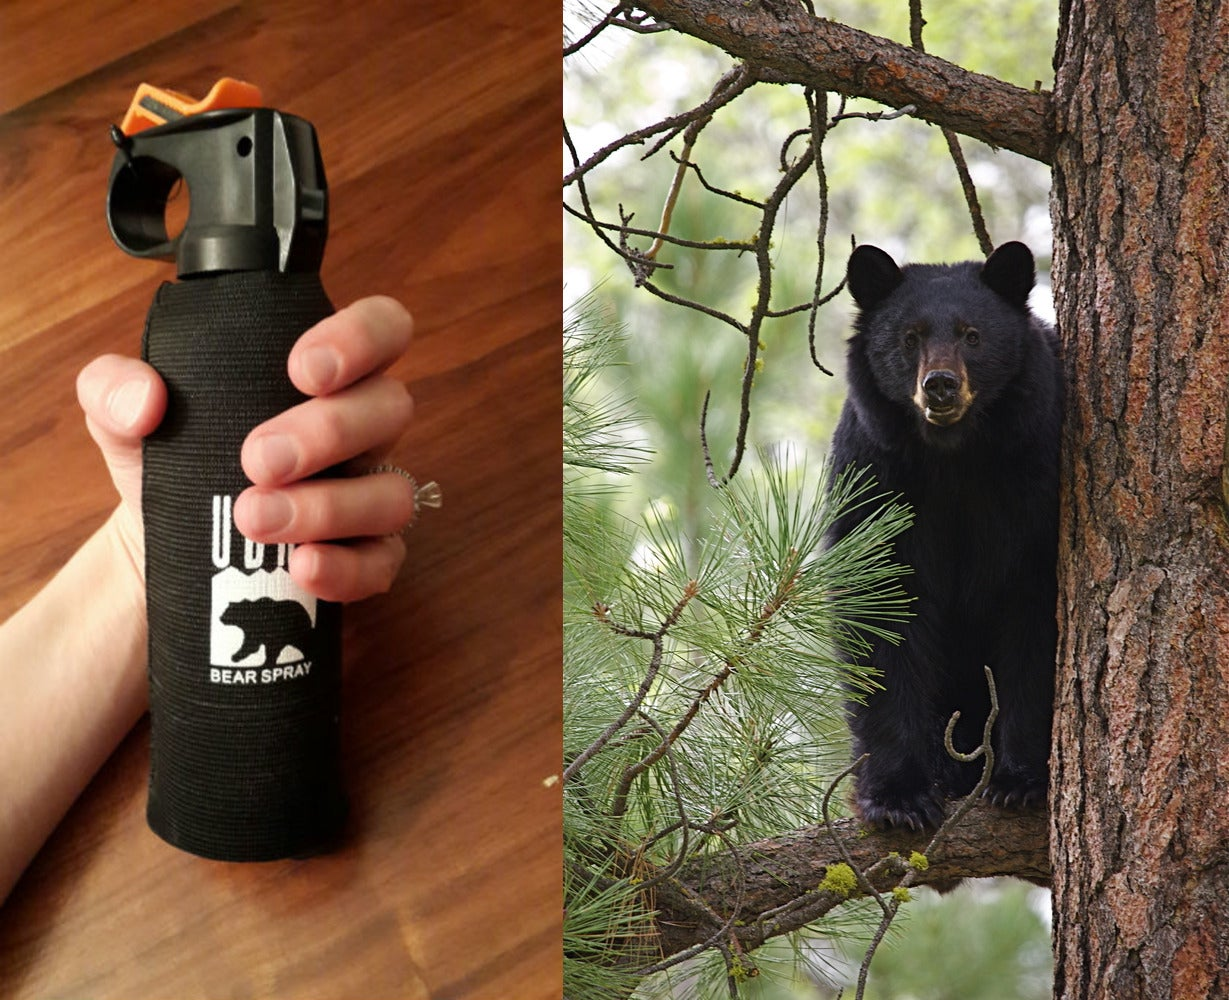 bear spray canister beside image of black bear in tree